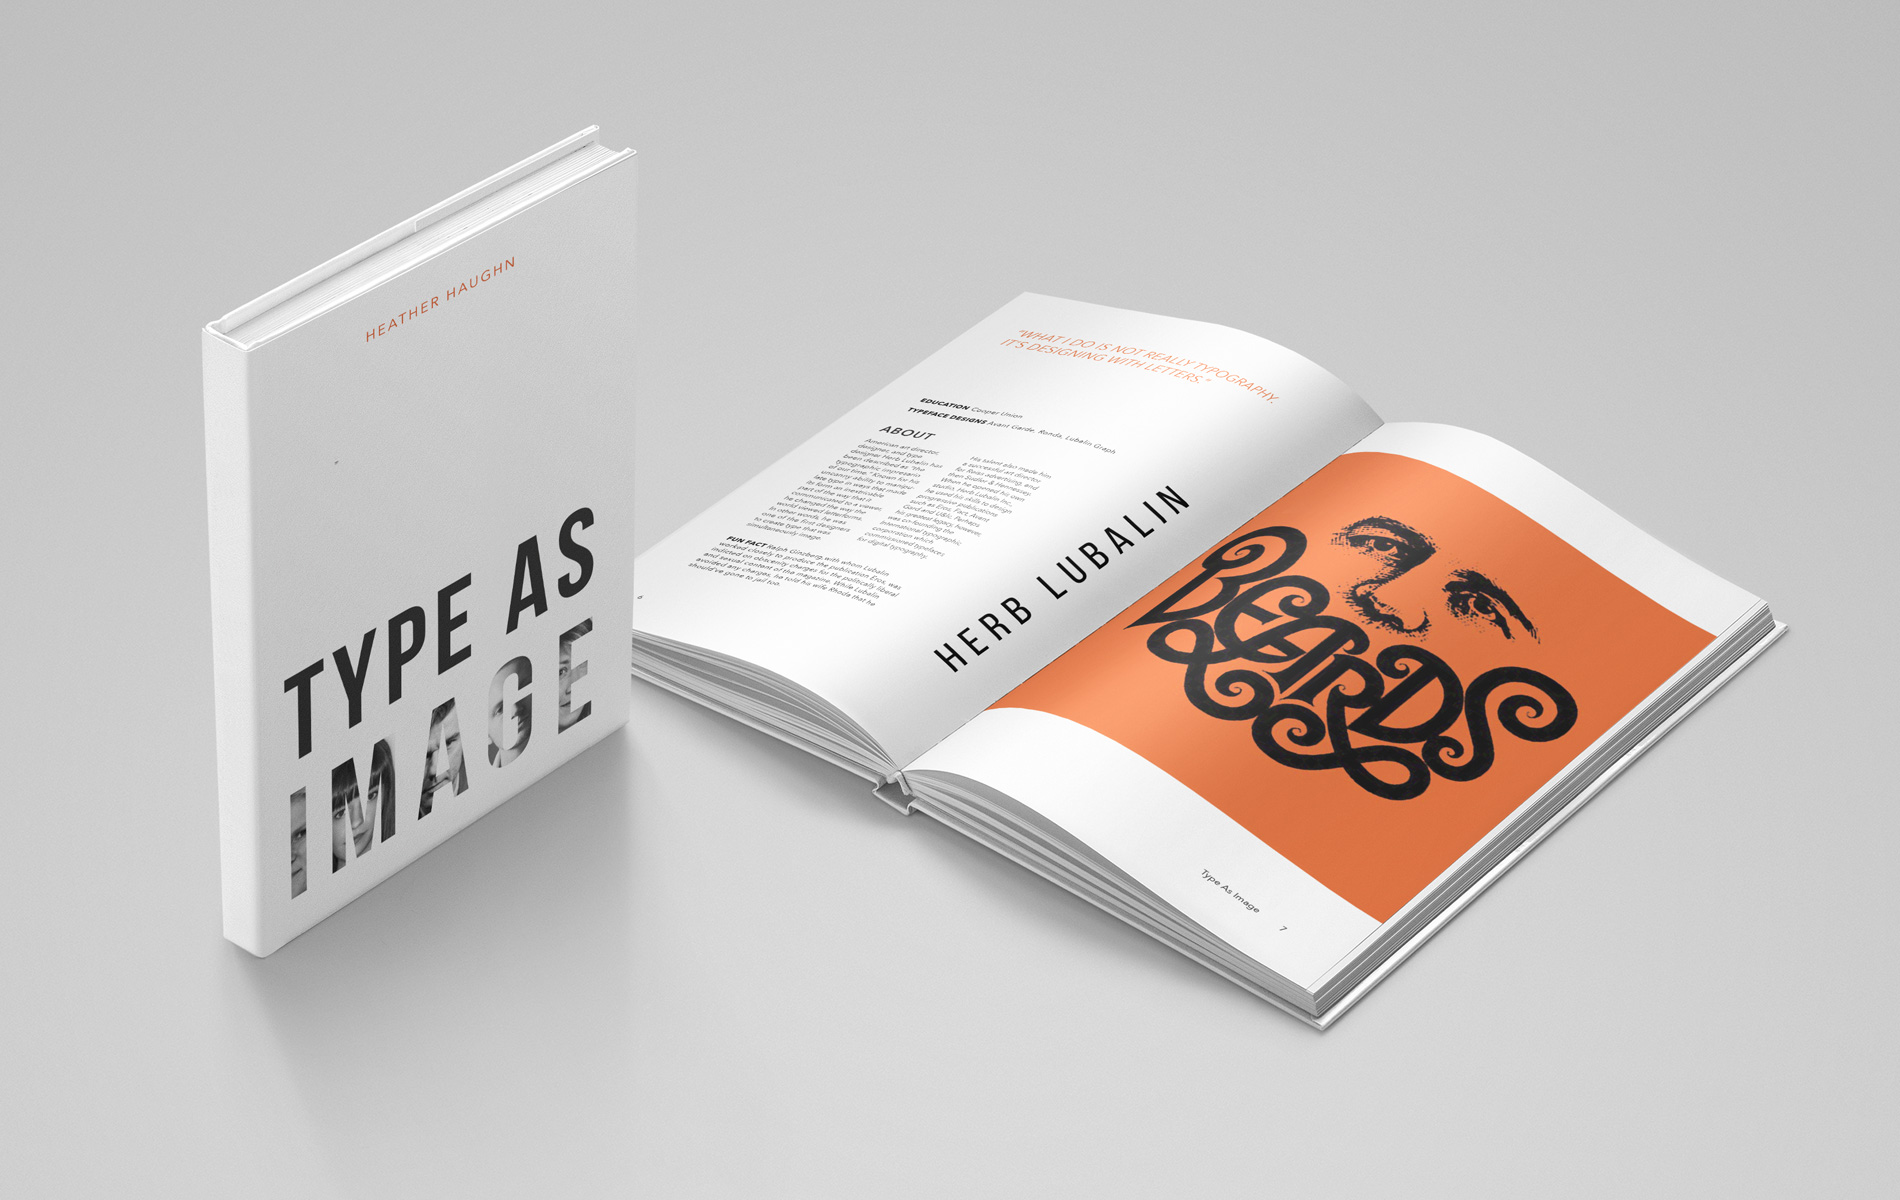 Heather Haughn  provides examples of creative expression through lettering in  Type as Image .